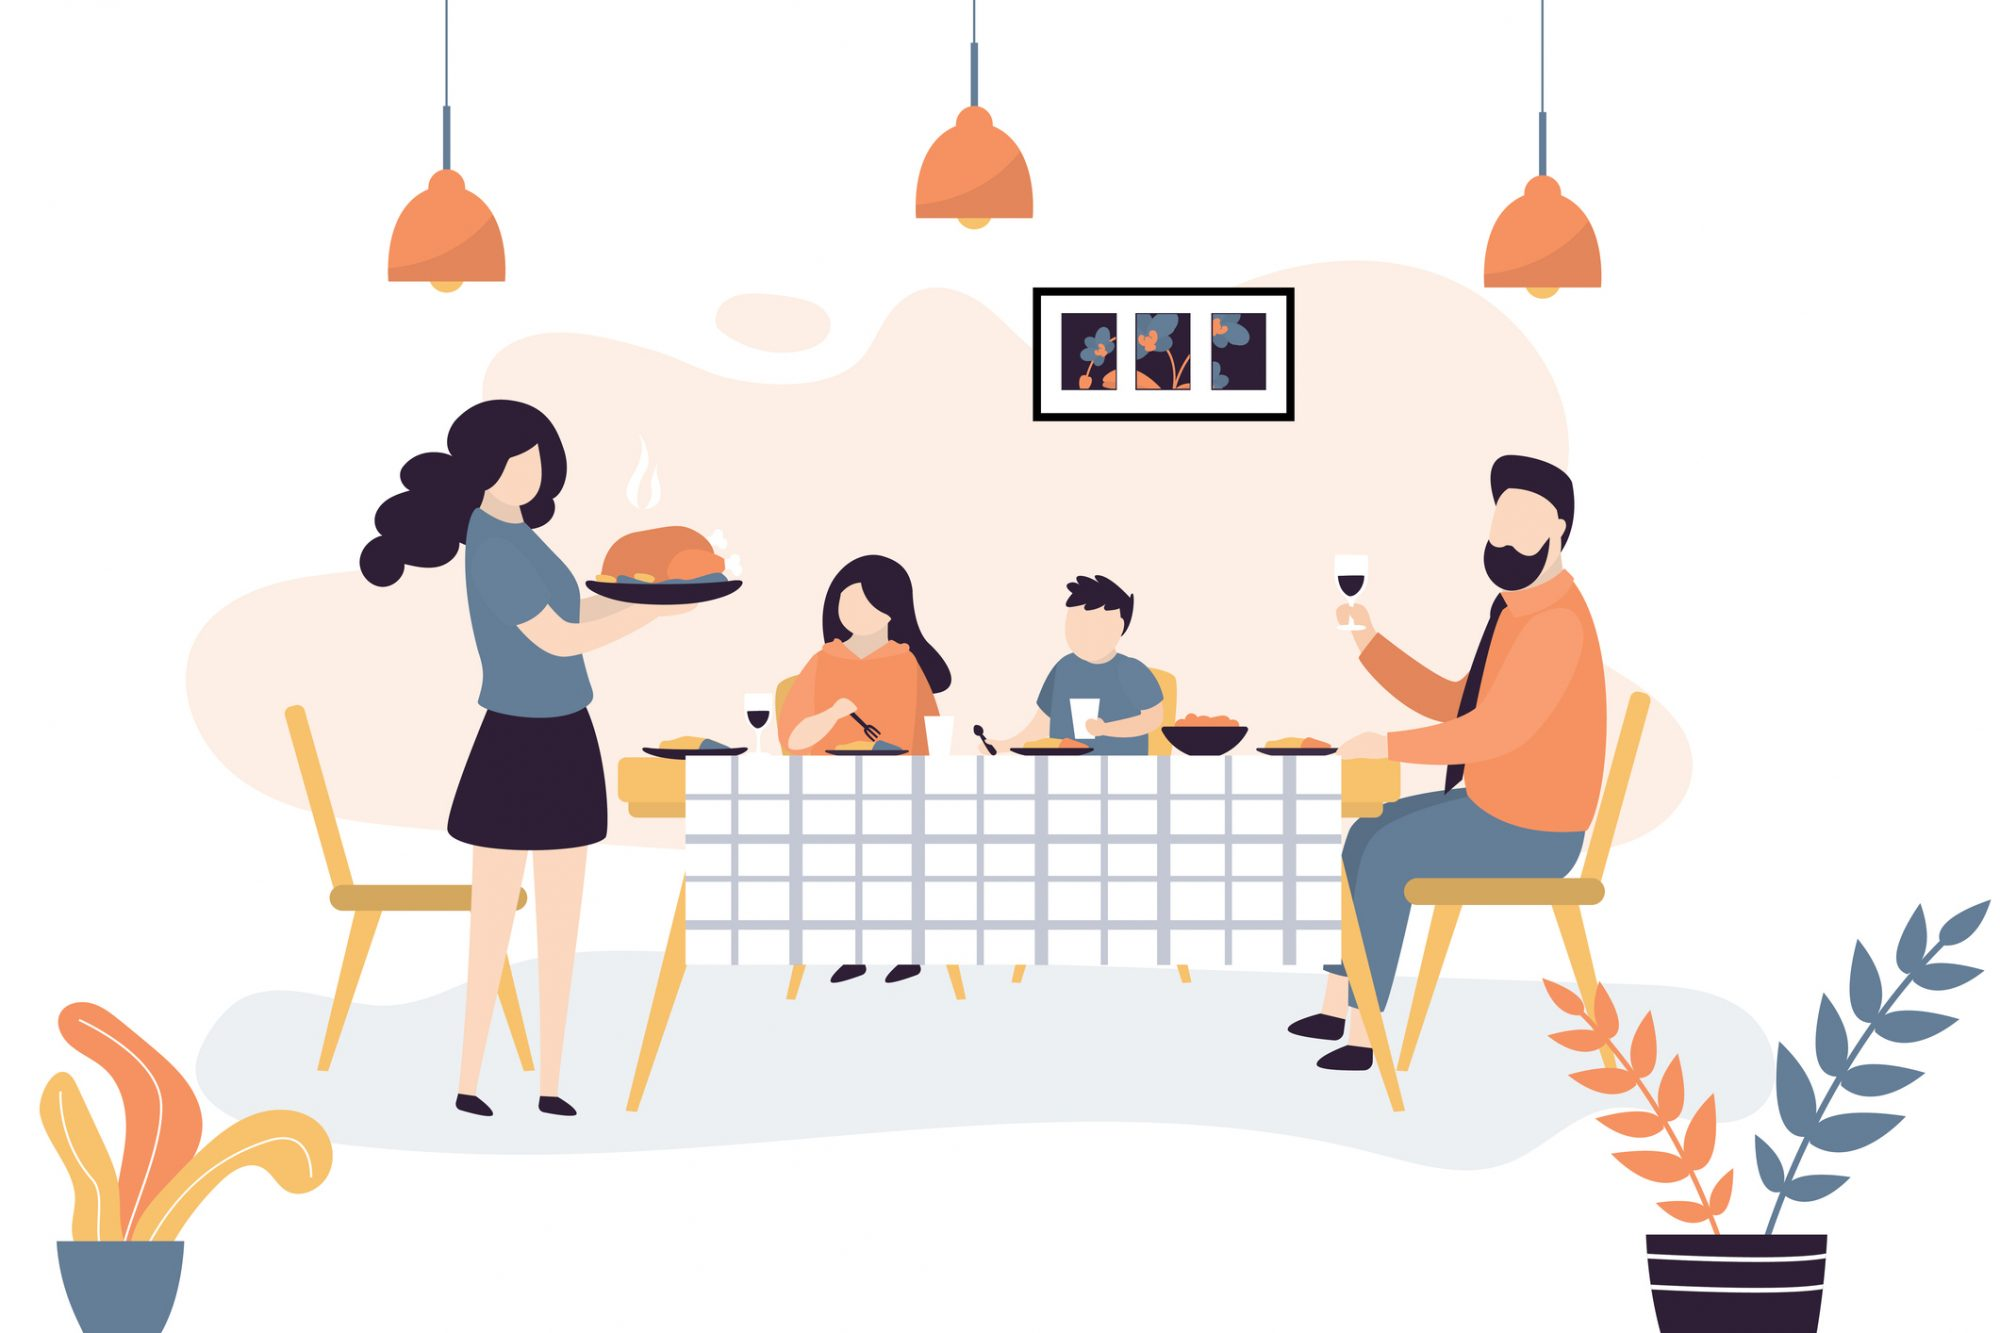 The family is sitting at the table. People eat together. Family portrait, parents and two children. Room interior with furniture